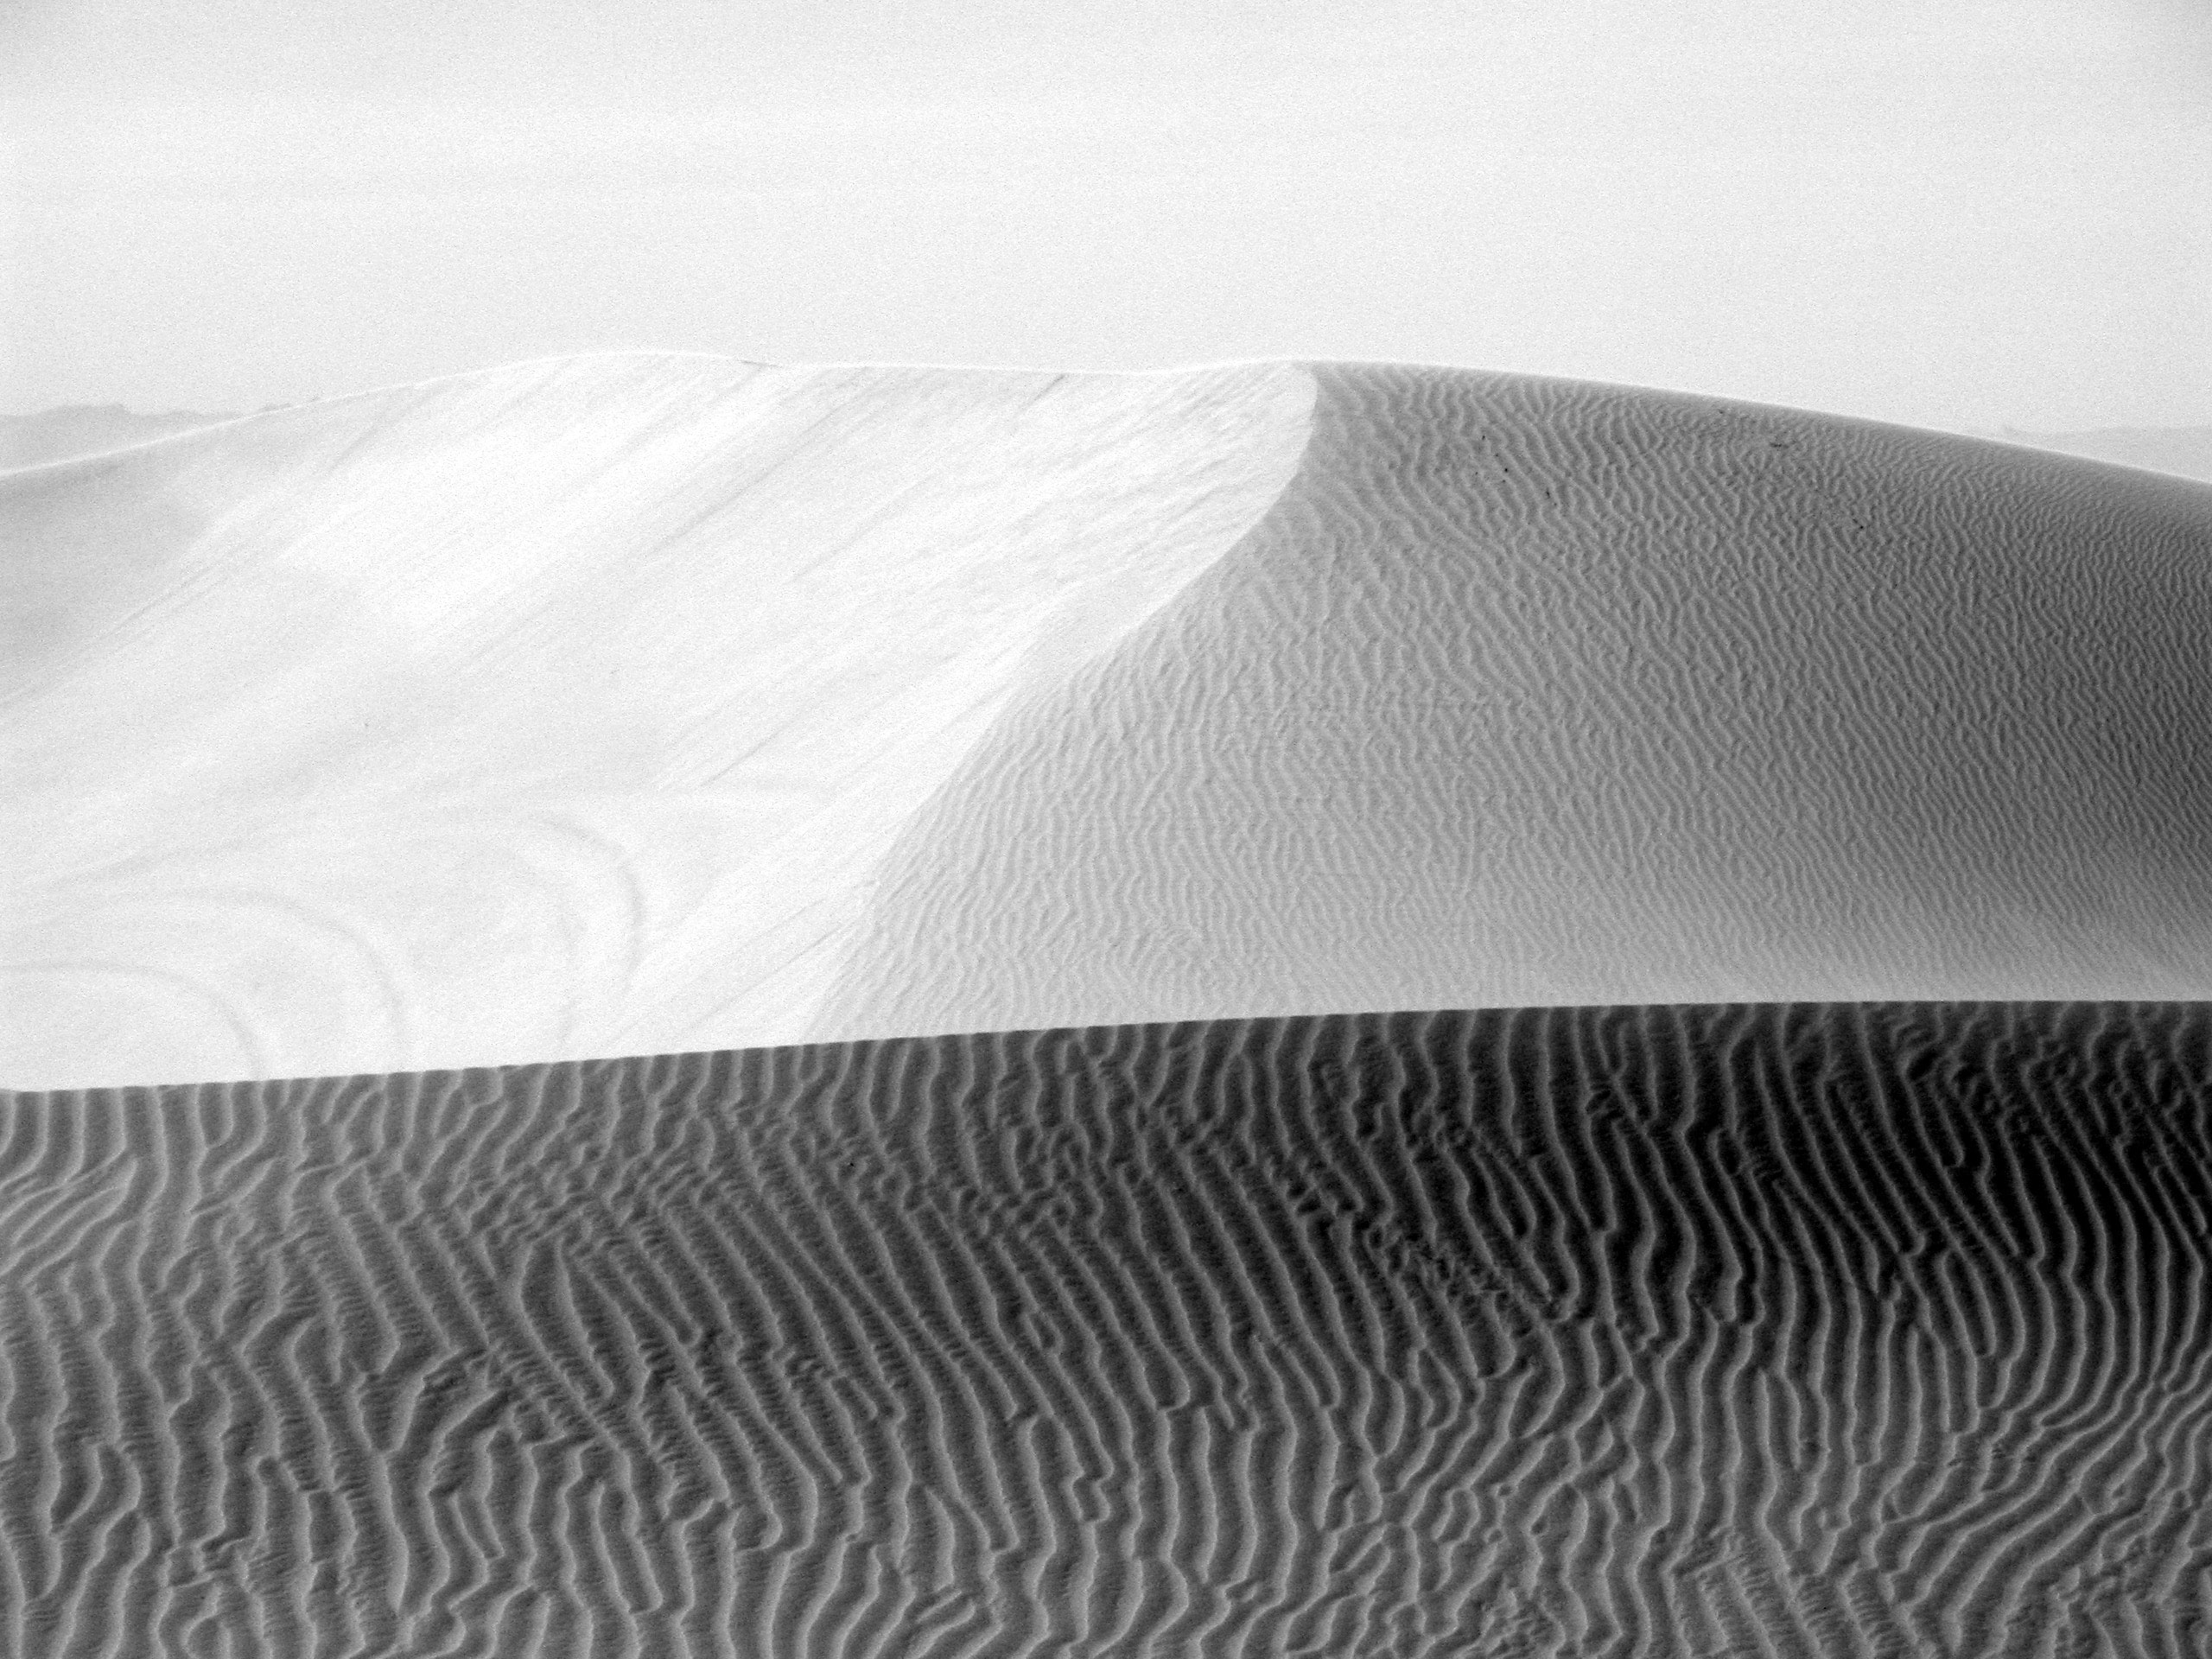 grayscale photography of desert